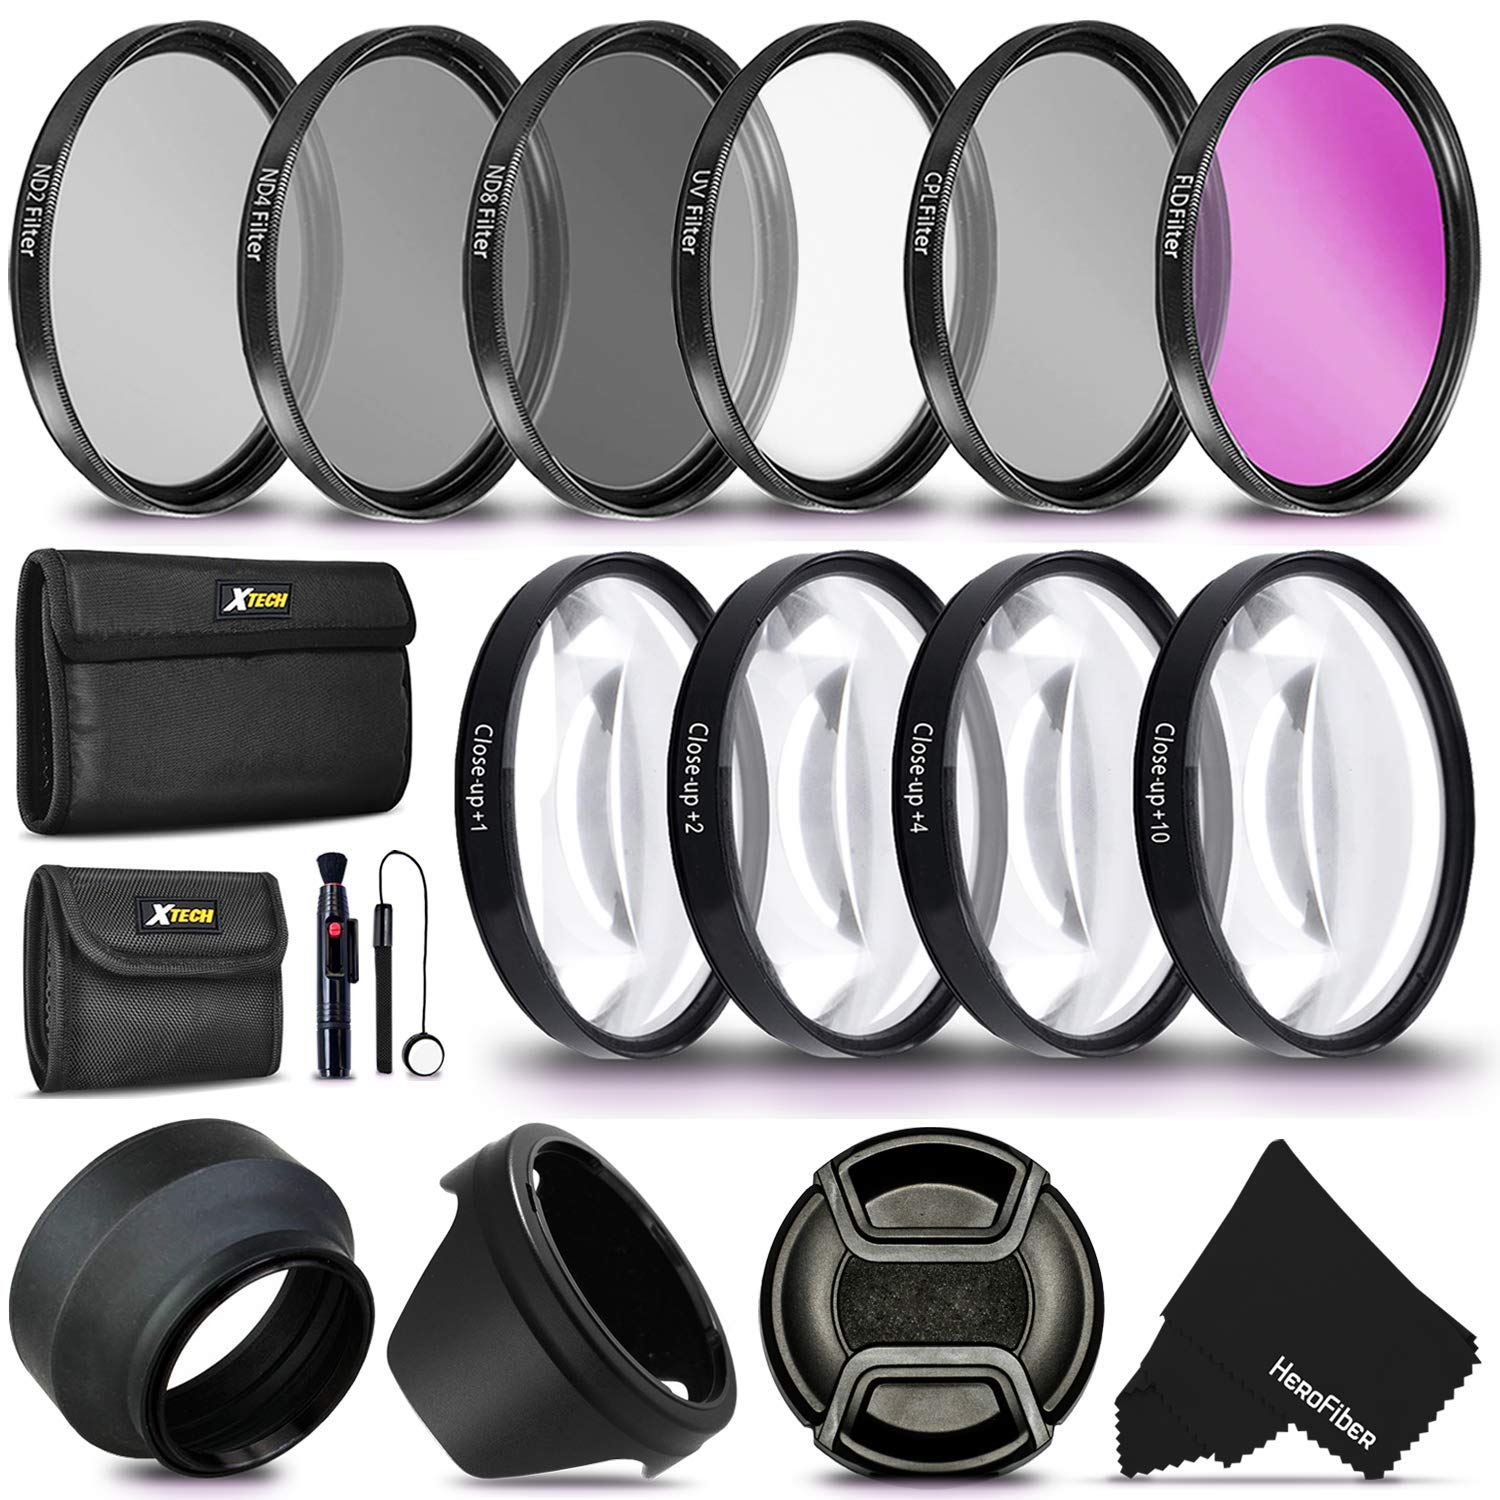 55MM Professional Lens Filter Accessory Kit (UV FLD CPL) ND Filters Set (ND2 ND4 ND8) 4 Close-up Macro Filters (+1 +2 +4 +10) for Nikon D3400 D5600 D7500 Camera with Nikon AF-P DX 18-55mm Lens by HeroFiber